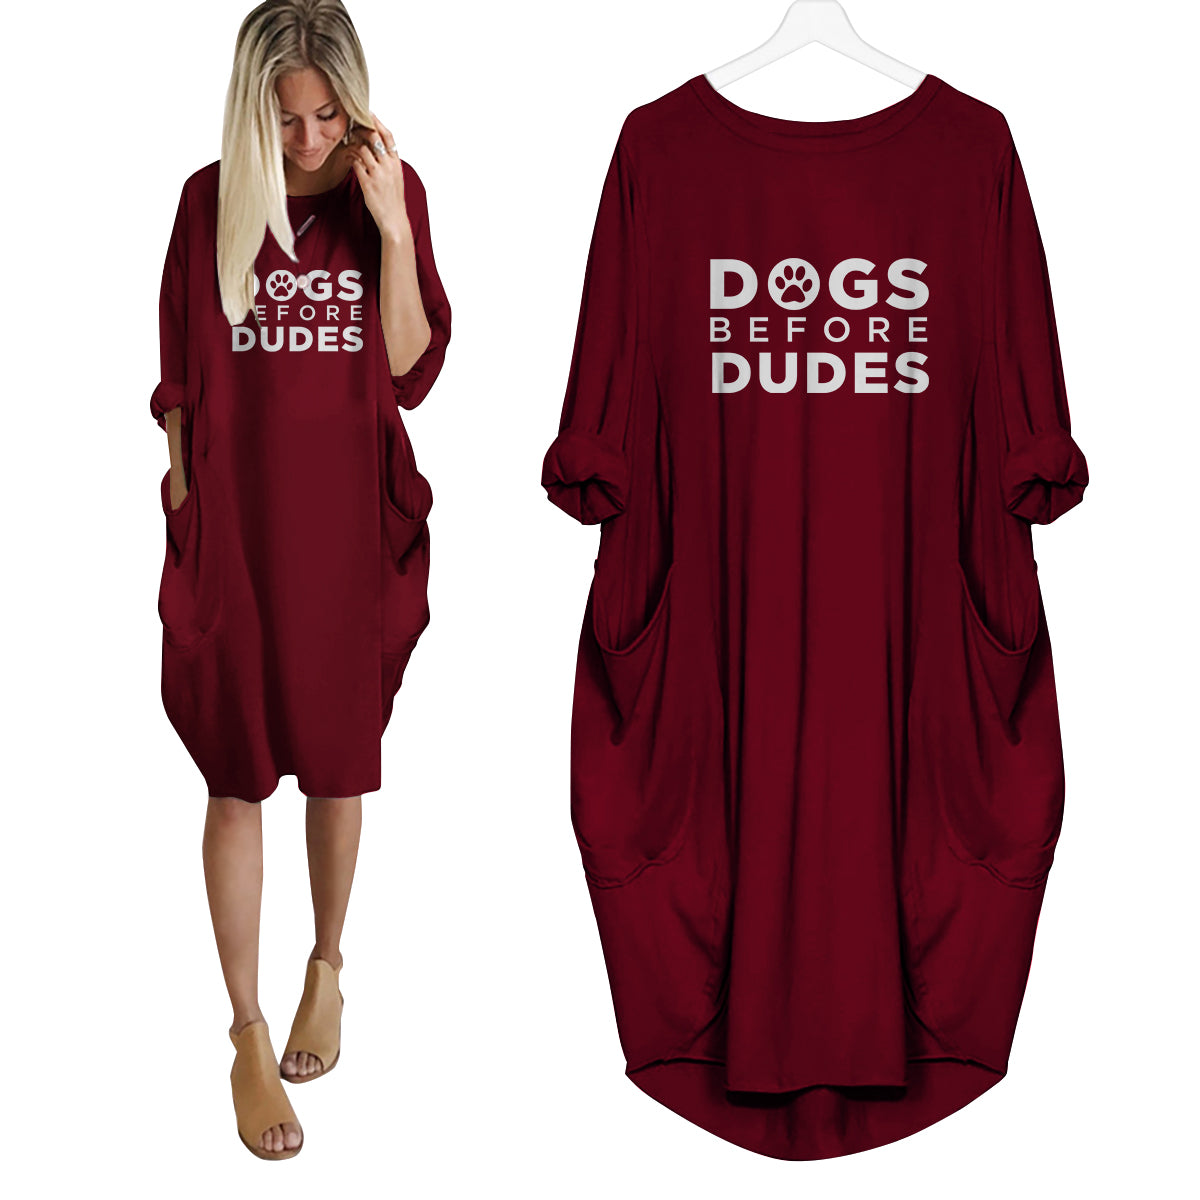 Dogs Before Dudes Dress